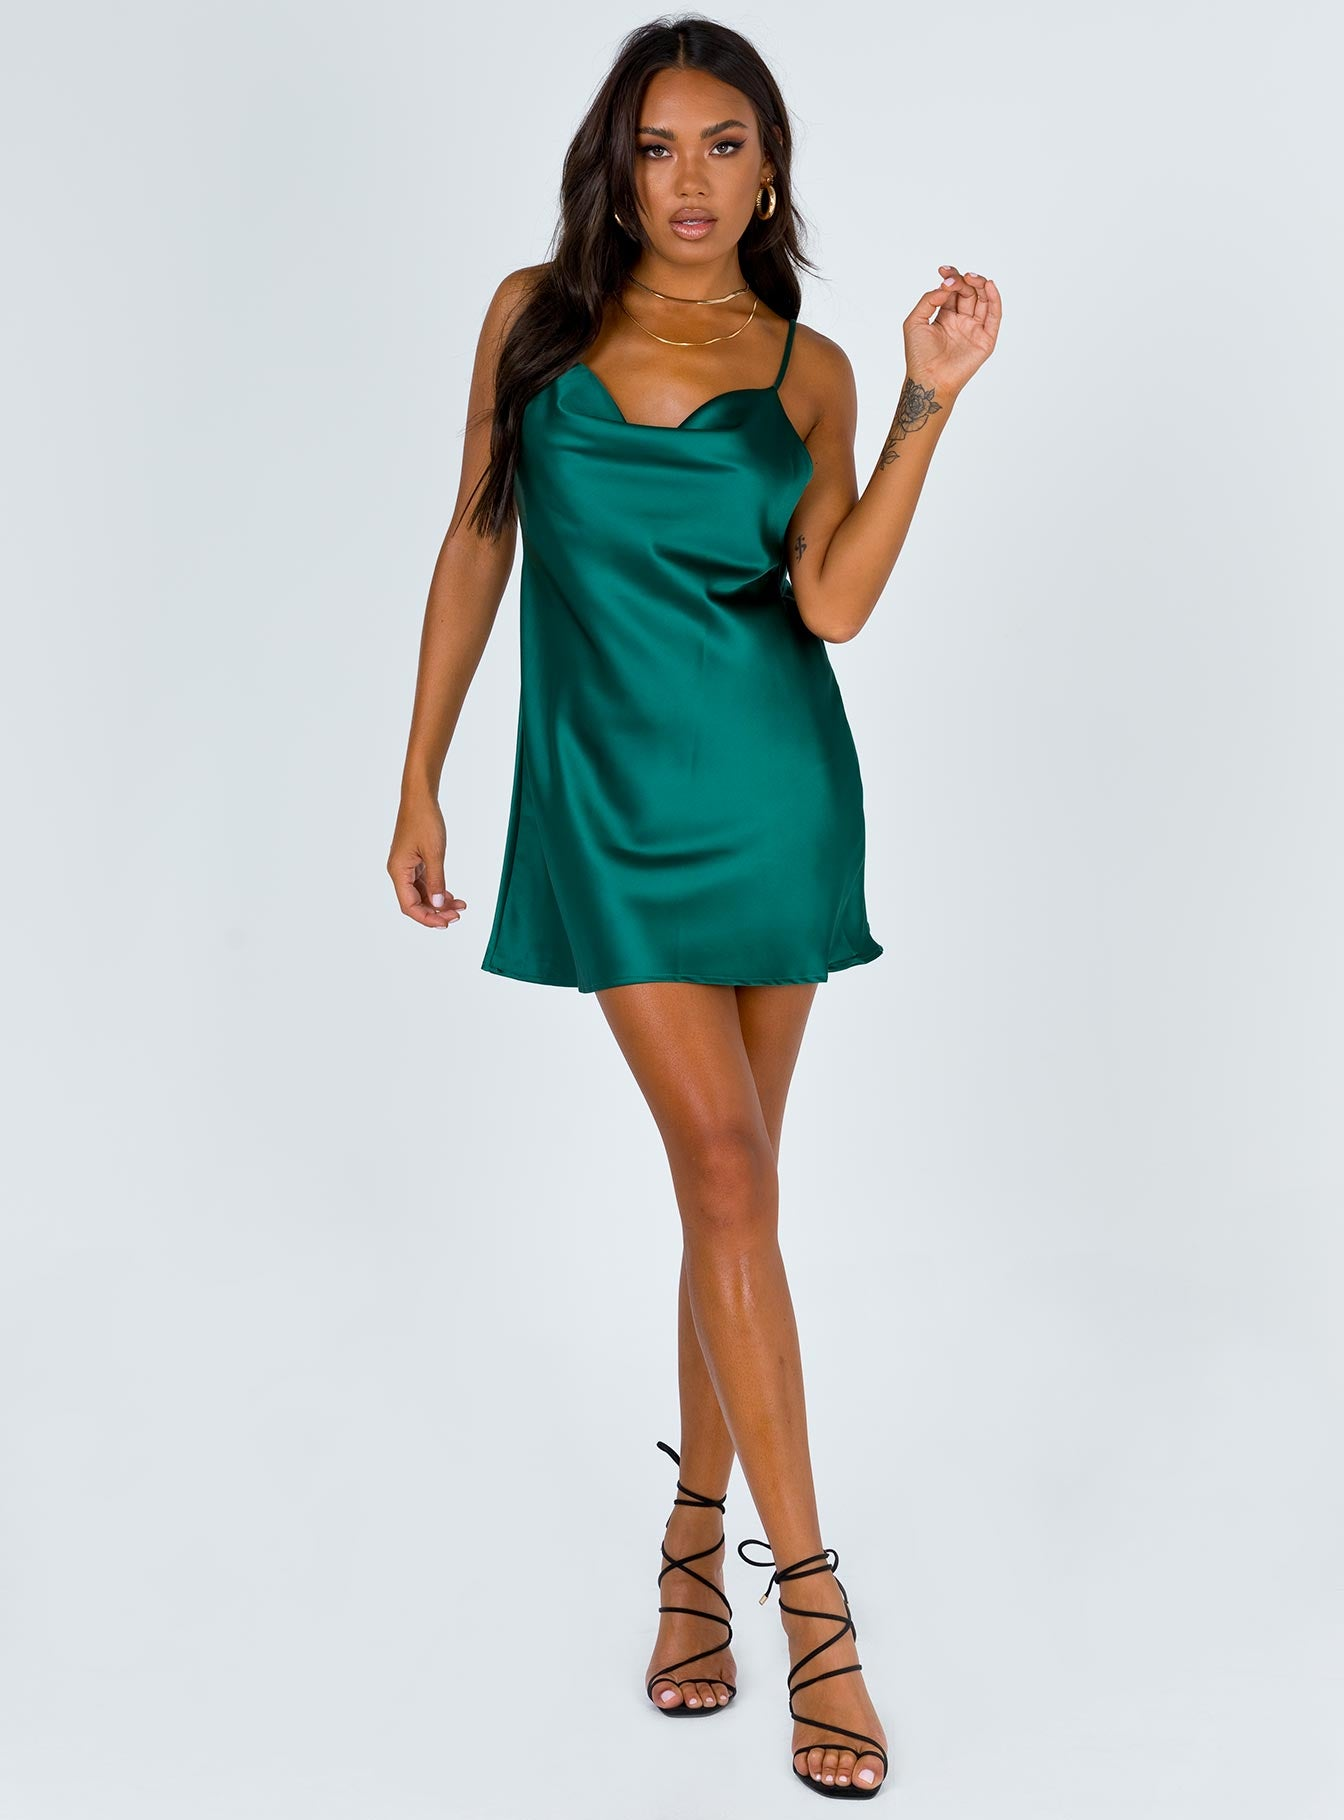 Betta Vanore Mini Dress Forest Green